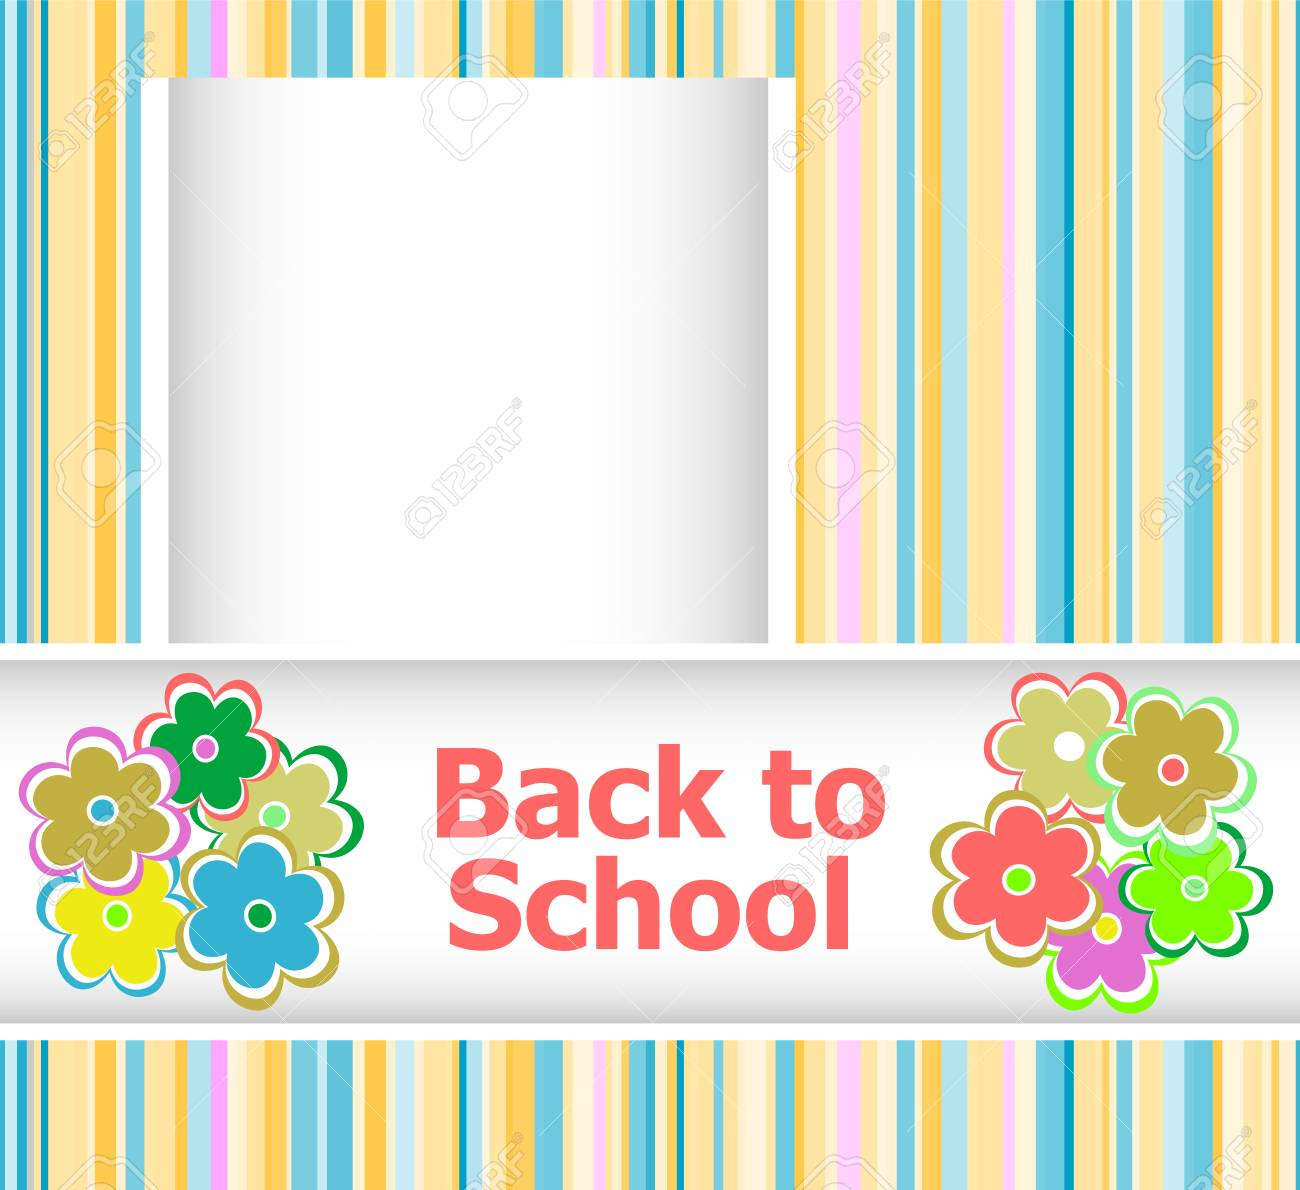 Back to school invitation card with flowers education concept stock back to school invitation card with flowers education concept stock photo 43804818 stopboris Image collections